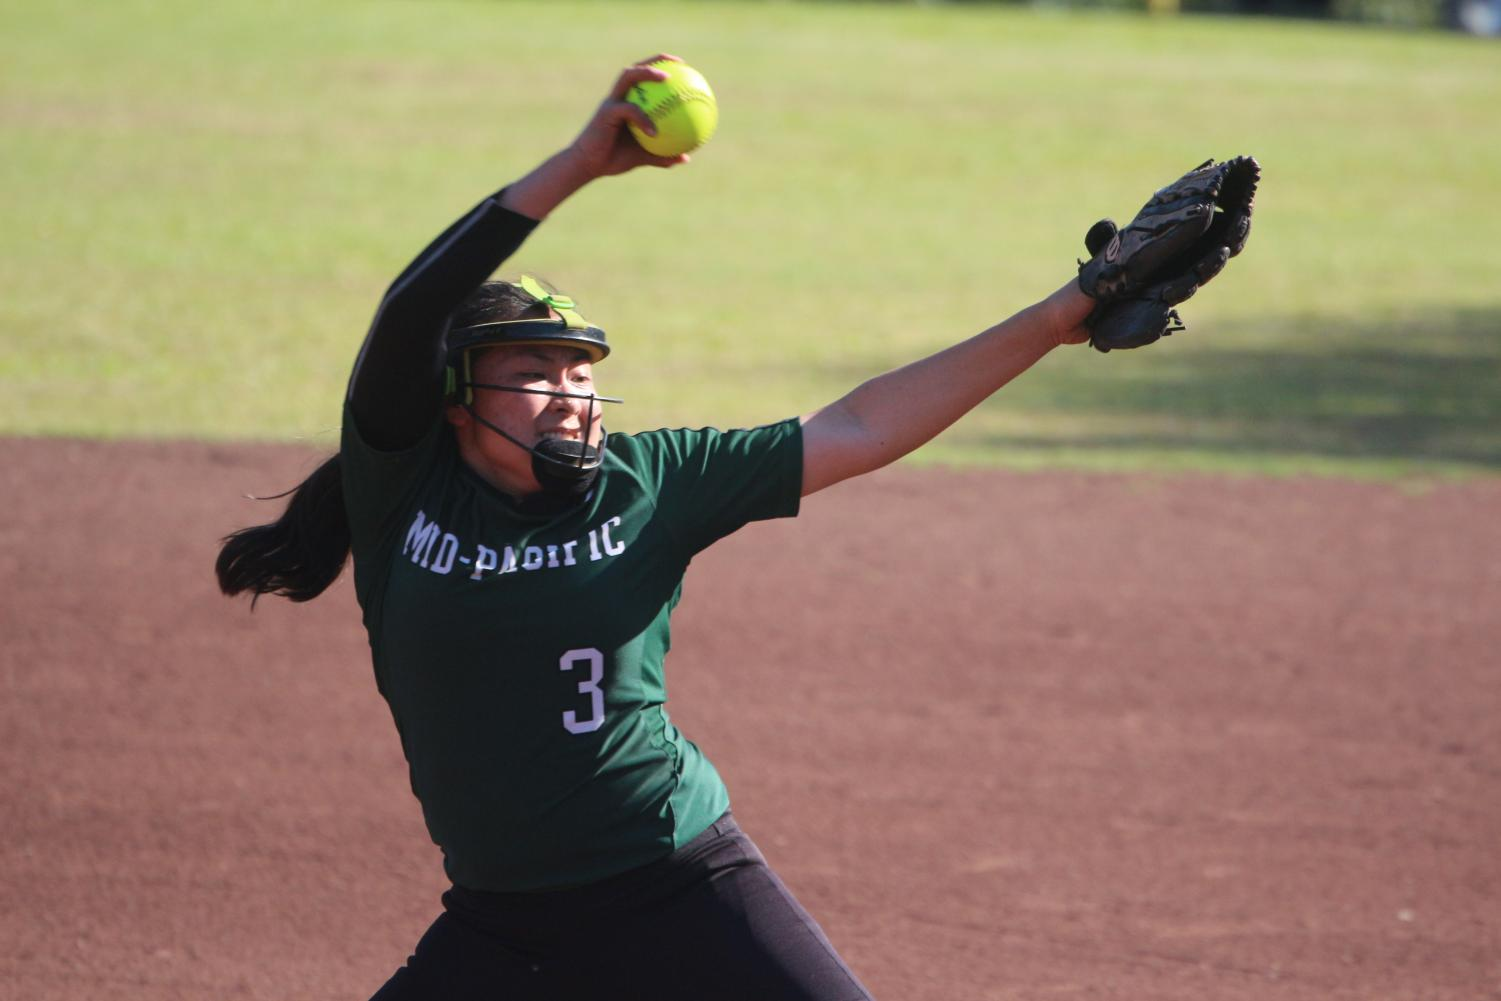 Player Darian Kanno pitches a ball to the opponent team